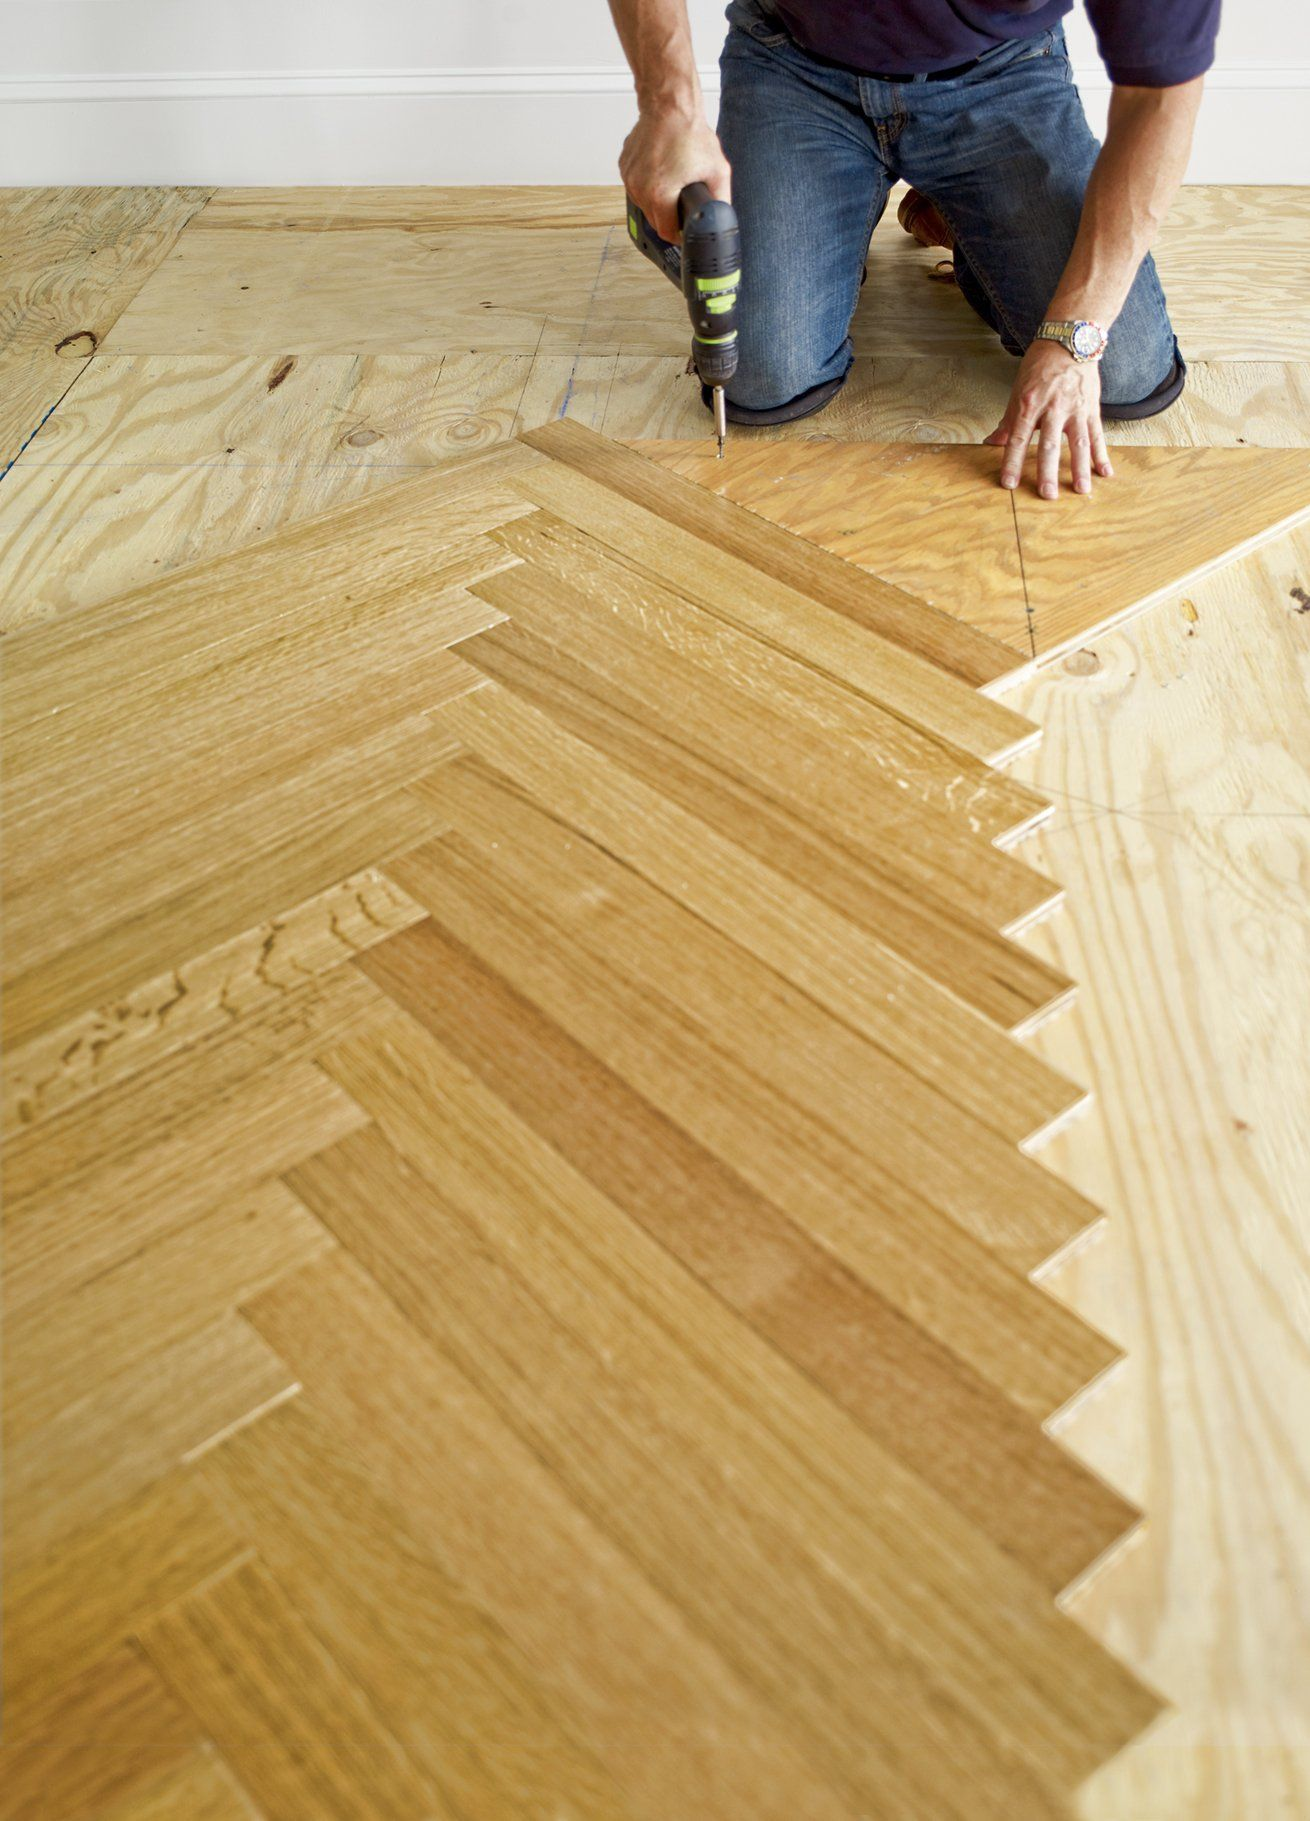 If You Have A Wood Floor That Could Use Built In Focal Point Try Inlaying Section Of Clic Herringbone Parquet Just Know The Zigzag